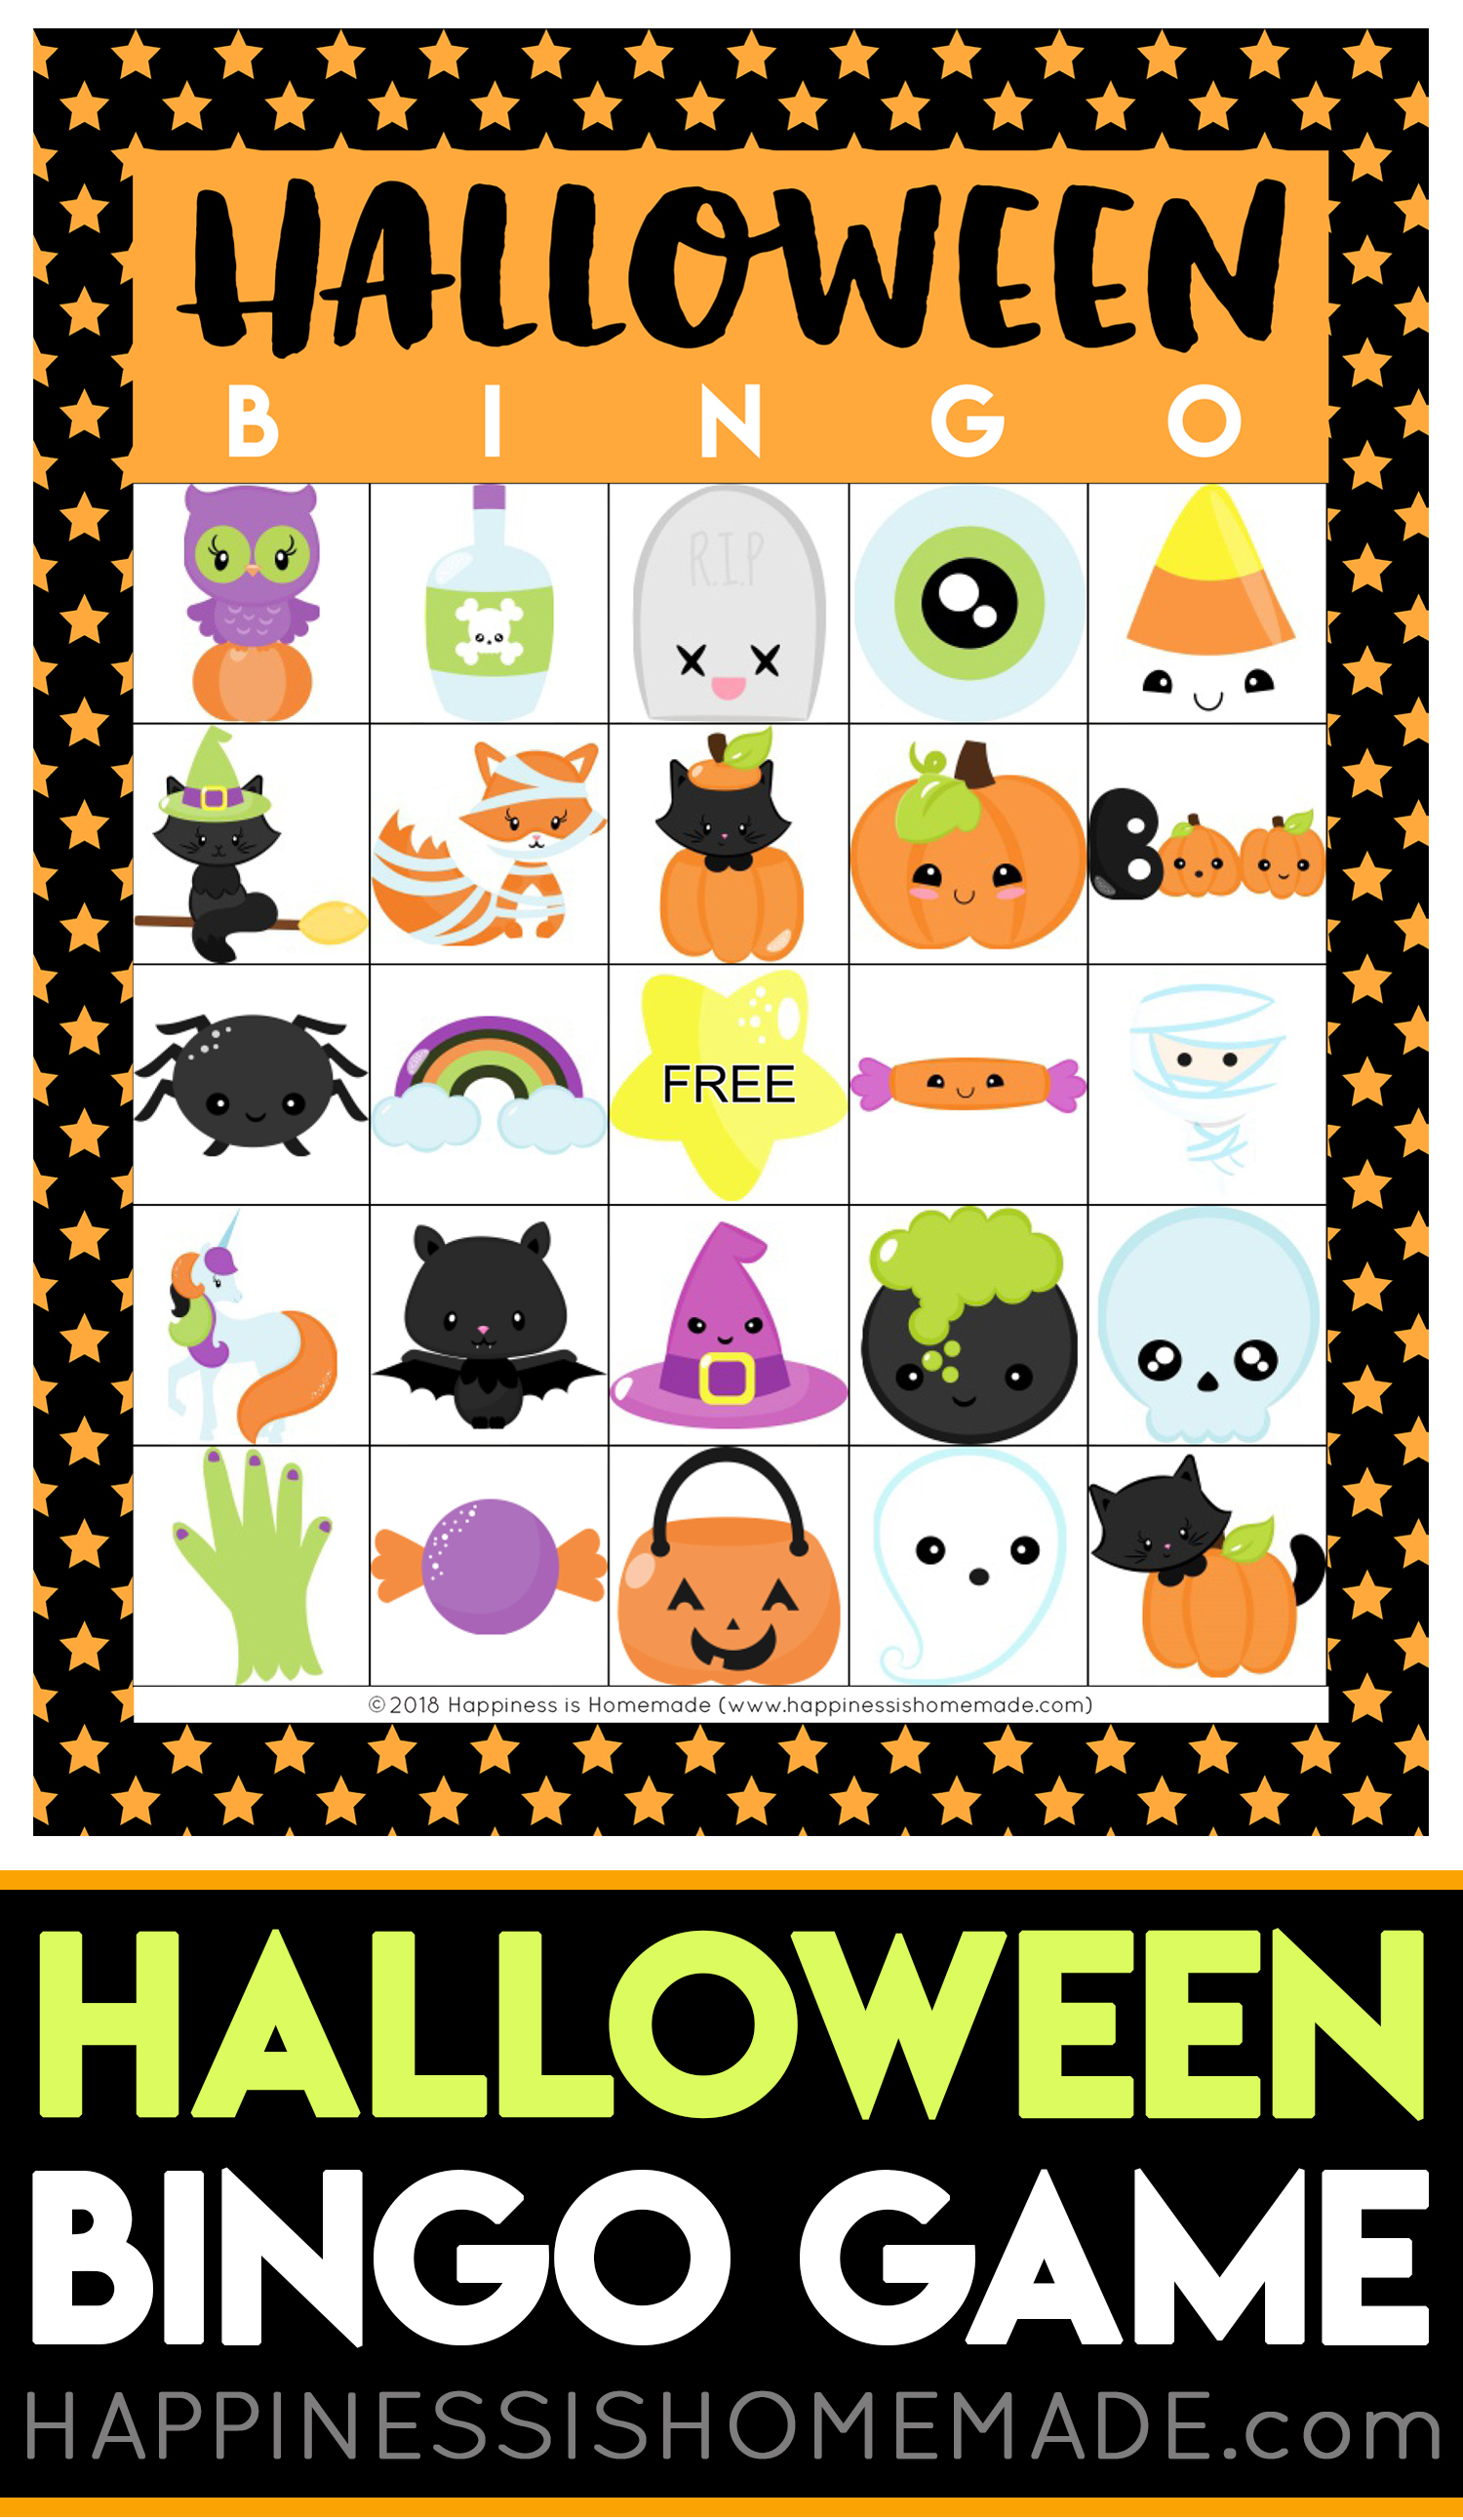 graphic regarding 25 Printable Halloween Bingo Cards identified as Printable Halloween Bingo Playing cards - Joy is Home made